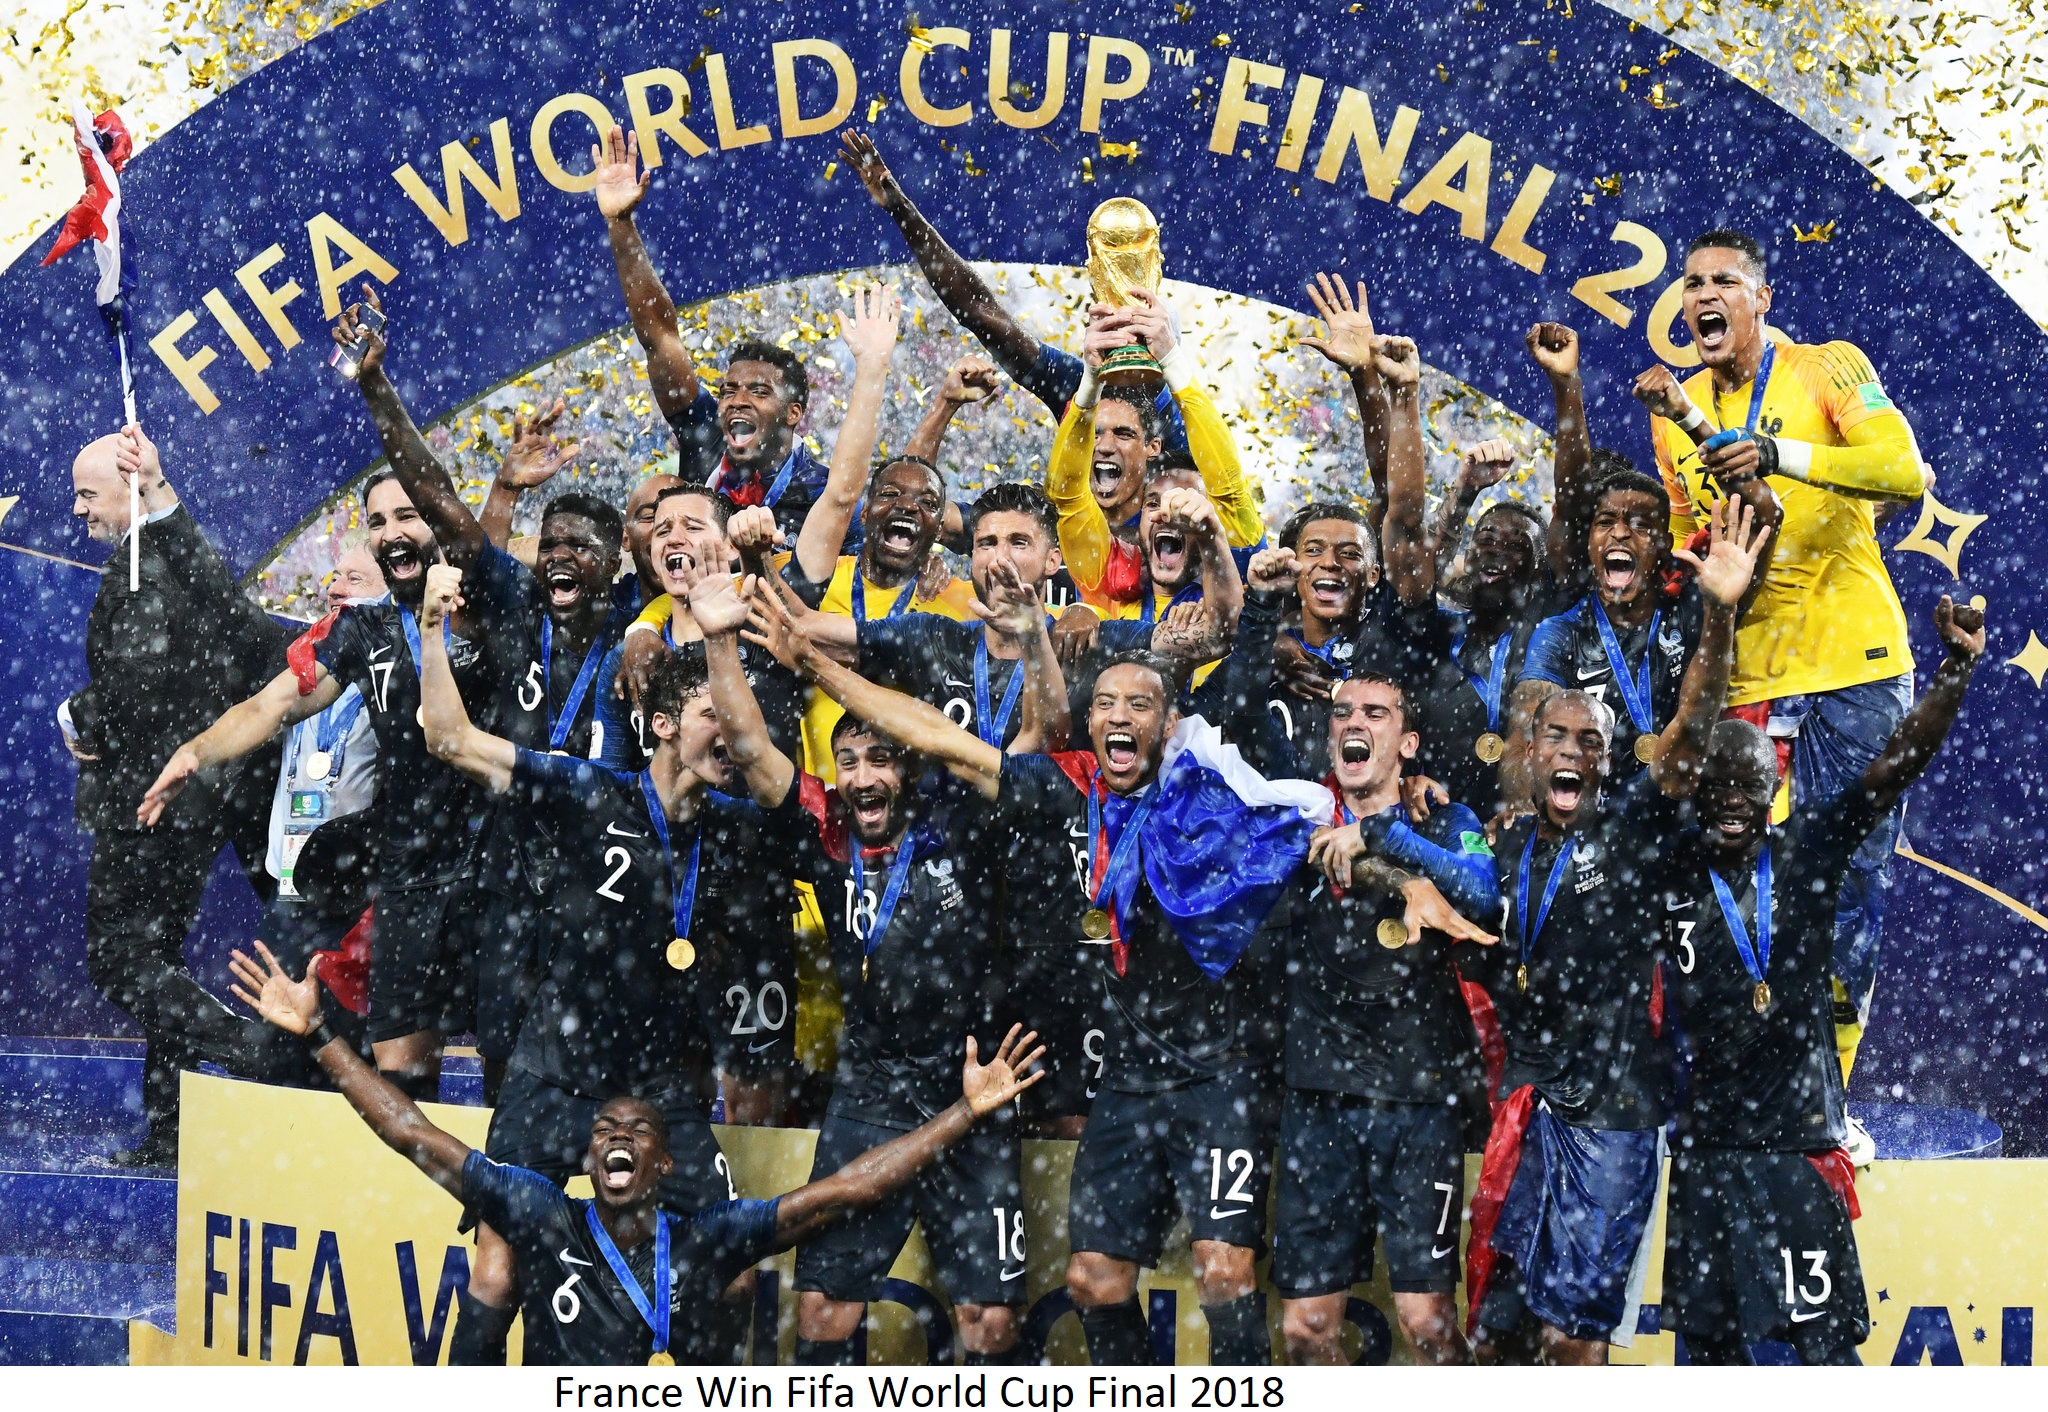 All the World Cup winners since it started